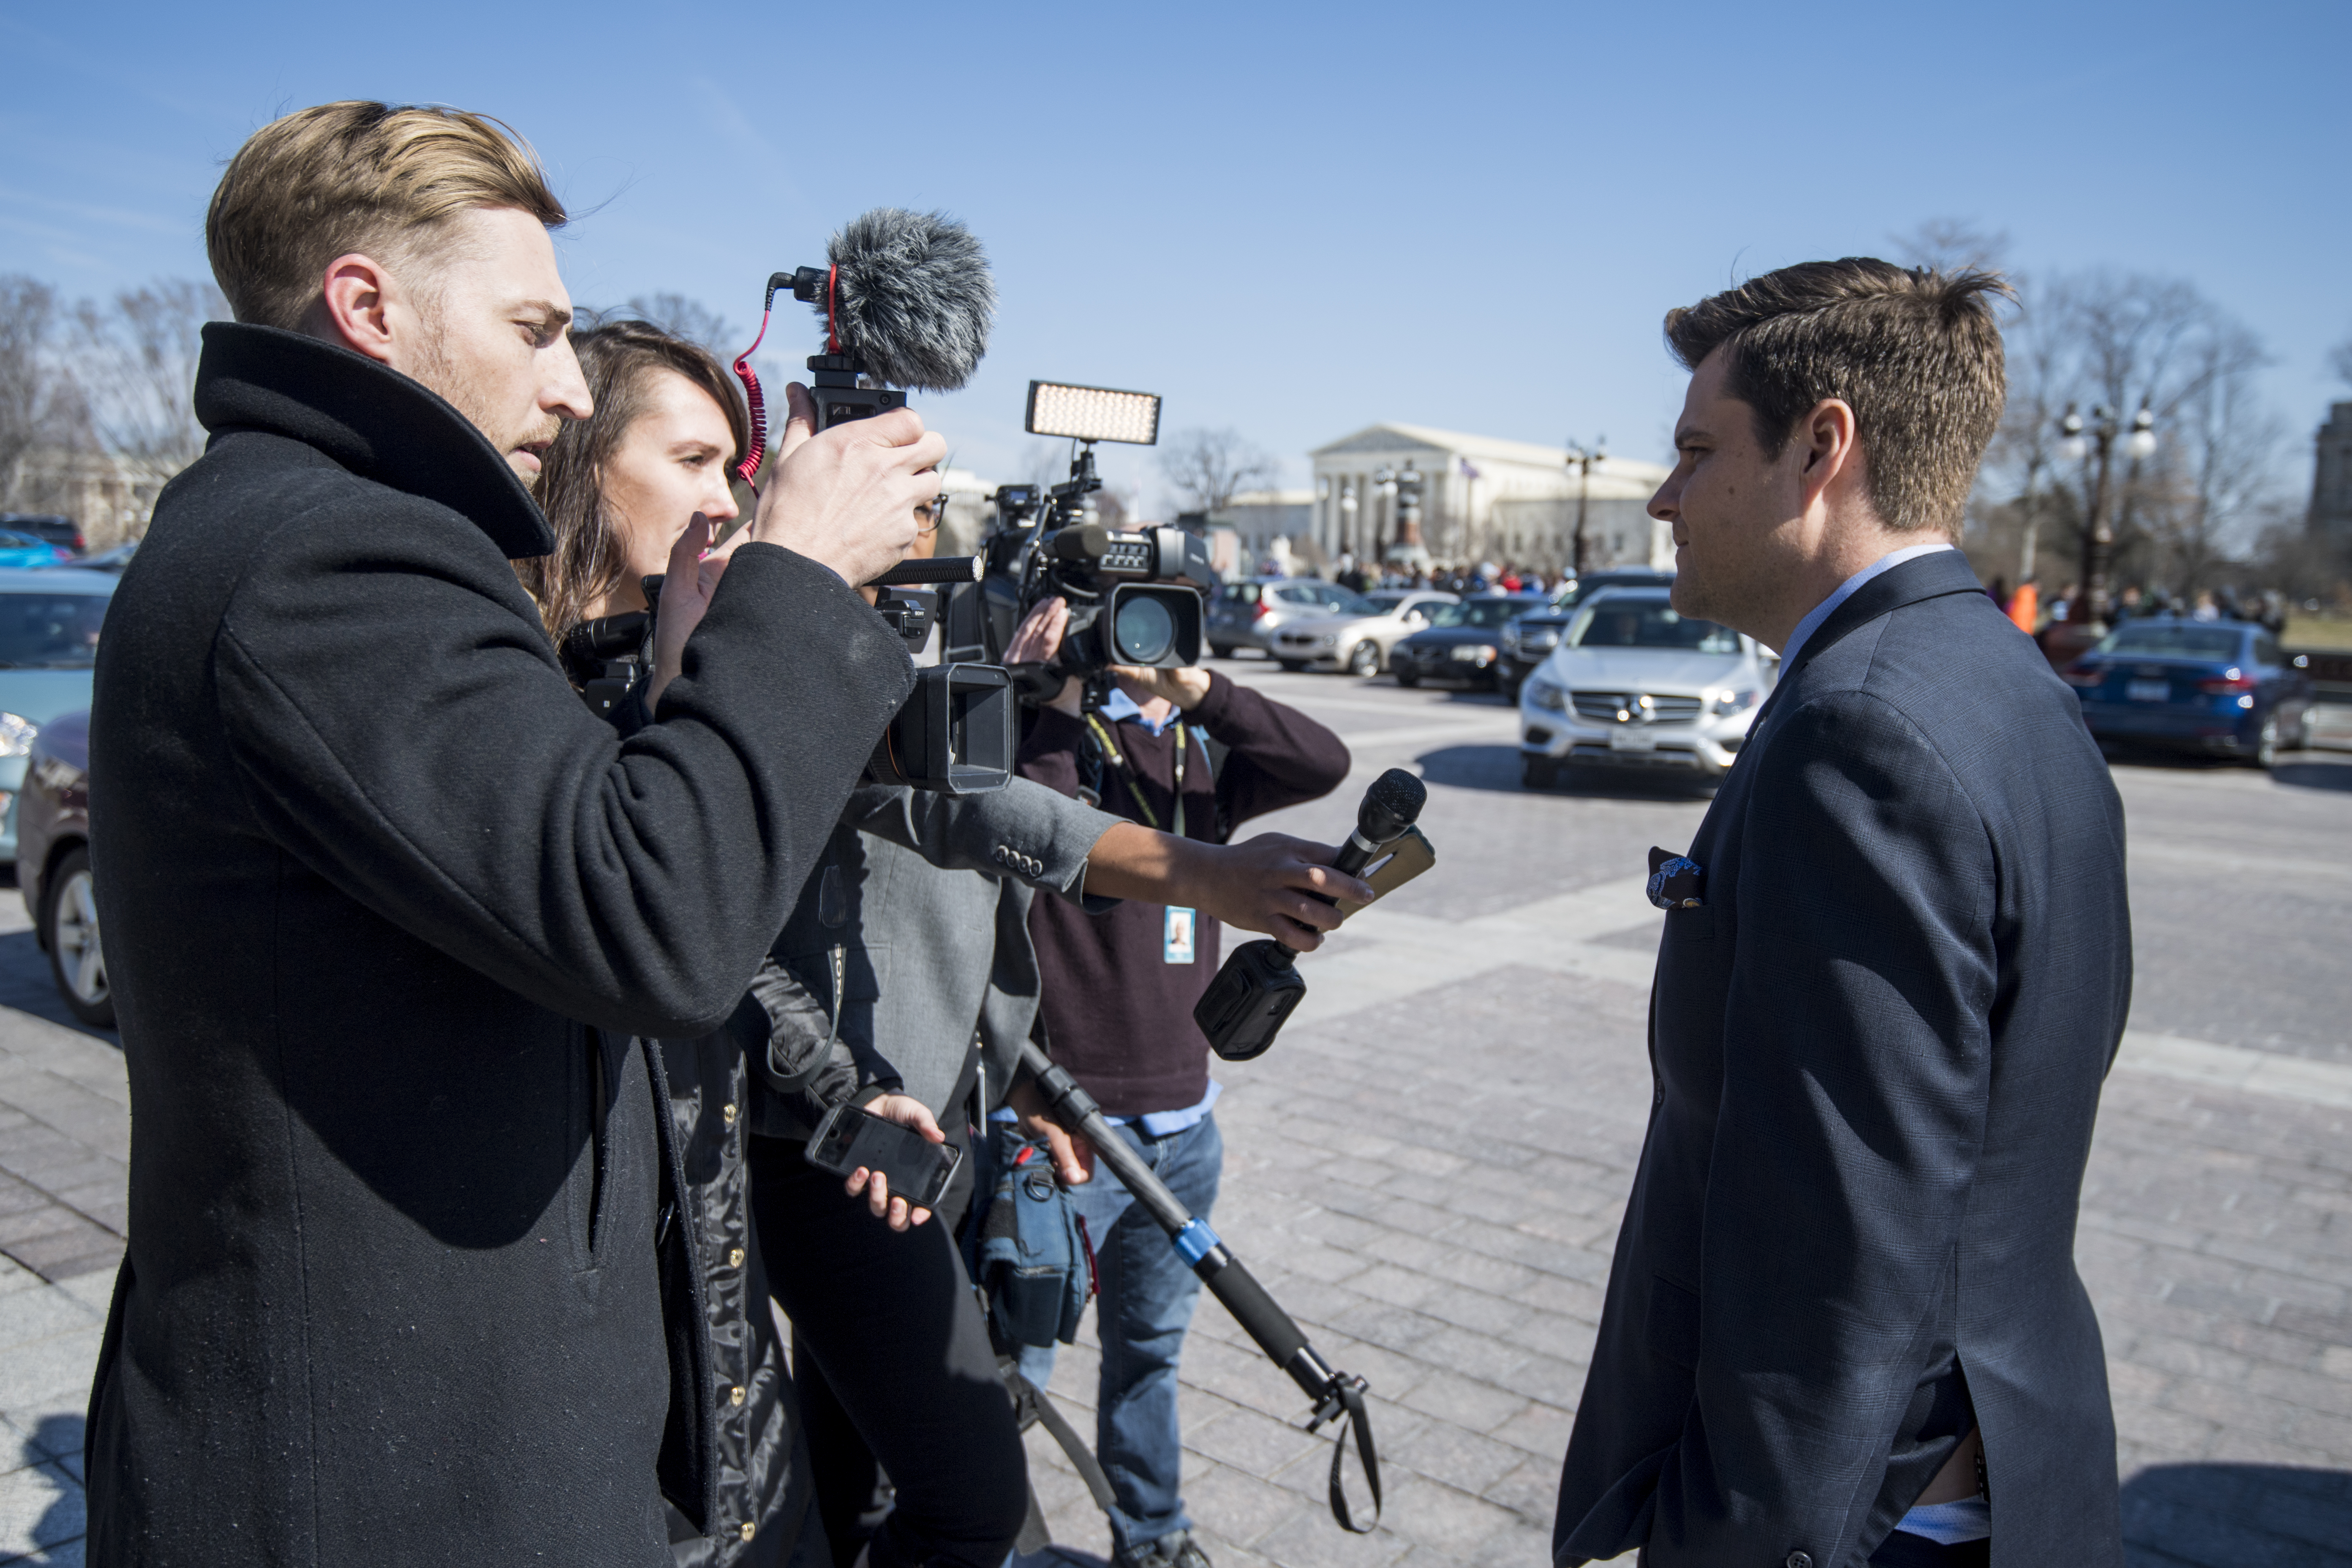 UNITED STATES - FEBRUARY 28: Rep. Matt Gaetz, R-Fla., speaks to cameras about his Michael Cohen tweet as he leaves the Capitol after the final votes of the week on Thursday, Feb. 28, 2019. (Photo By Bill Clark/CQ Roll Call)